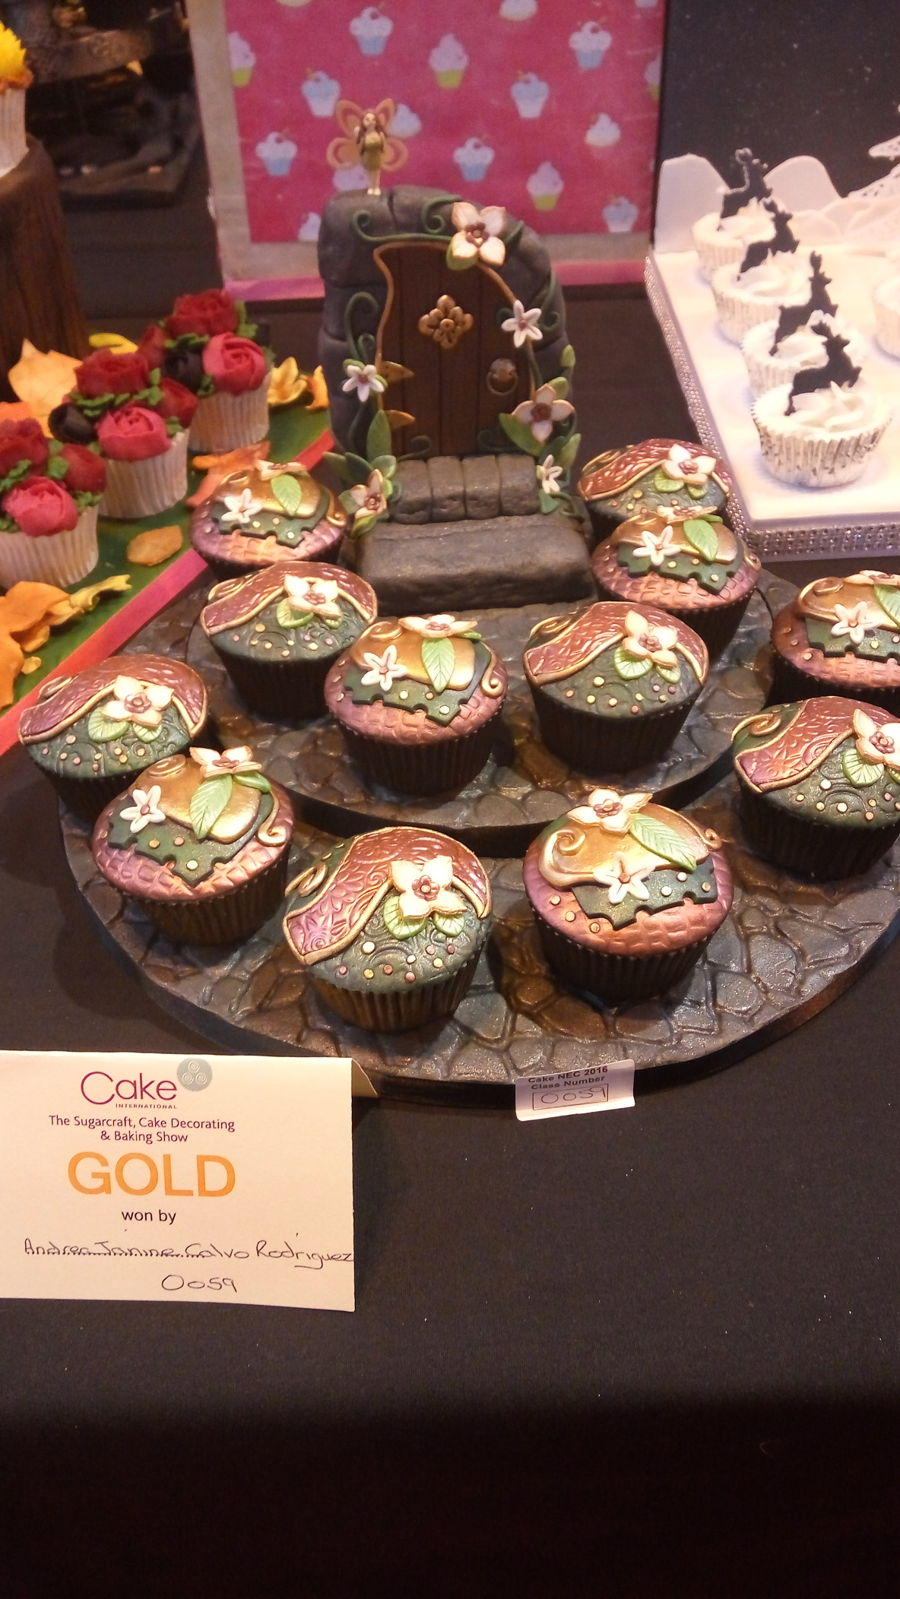 My Cupcakes At Cake International 2016 on Cake Central